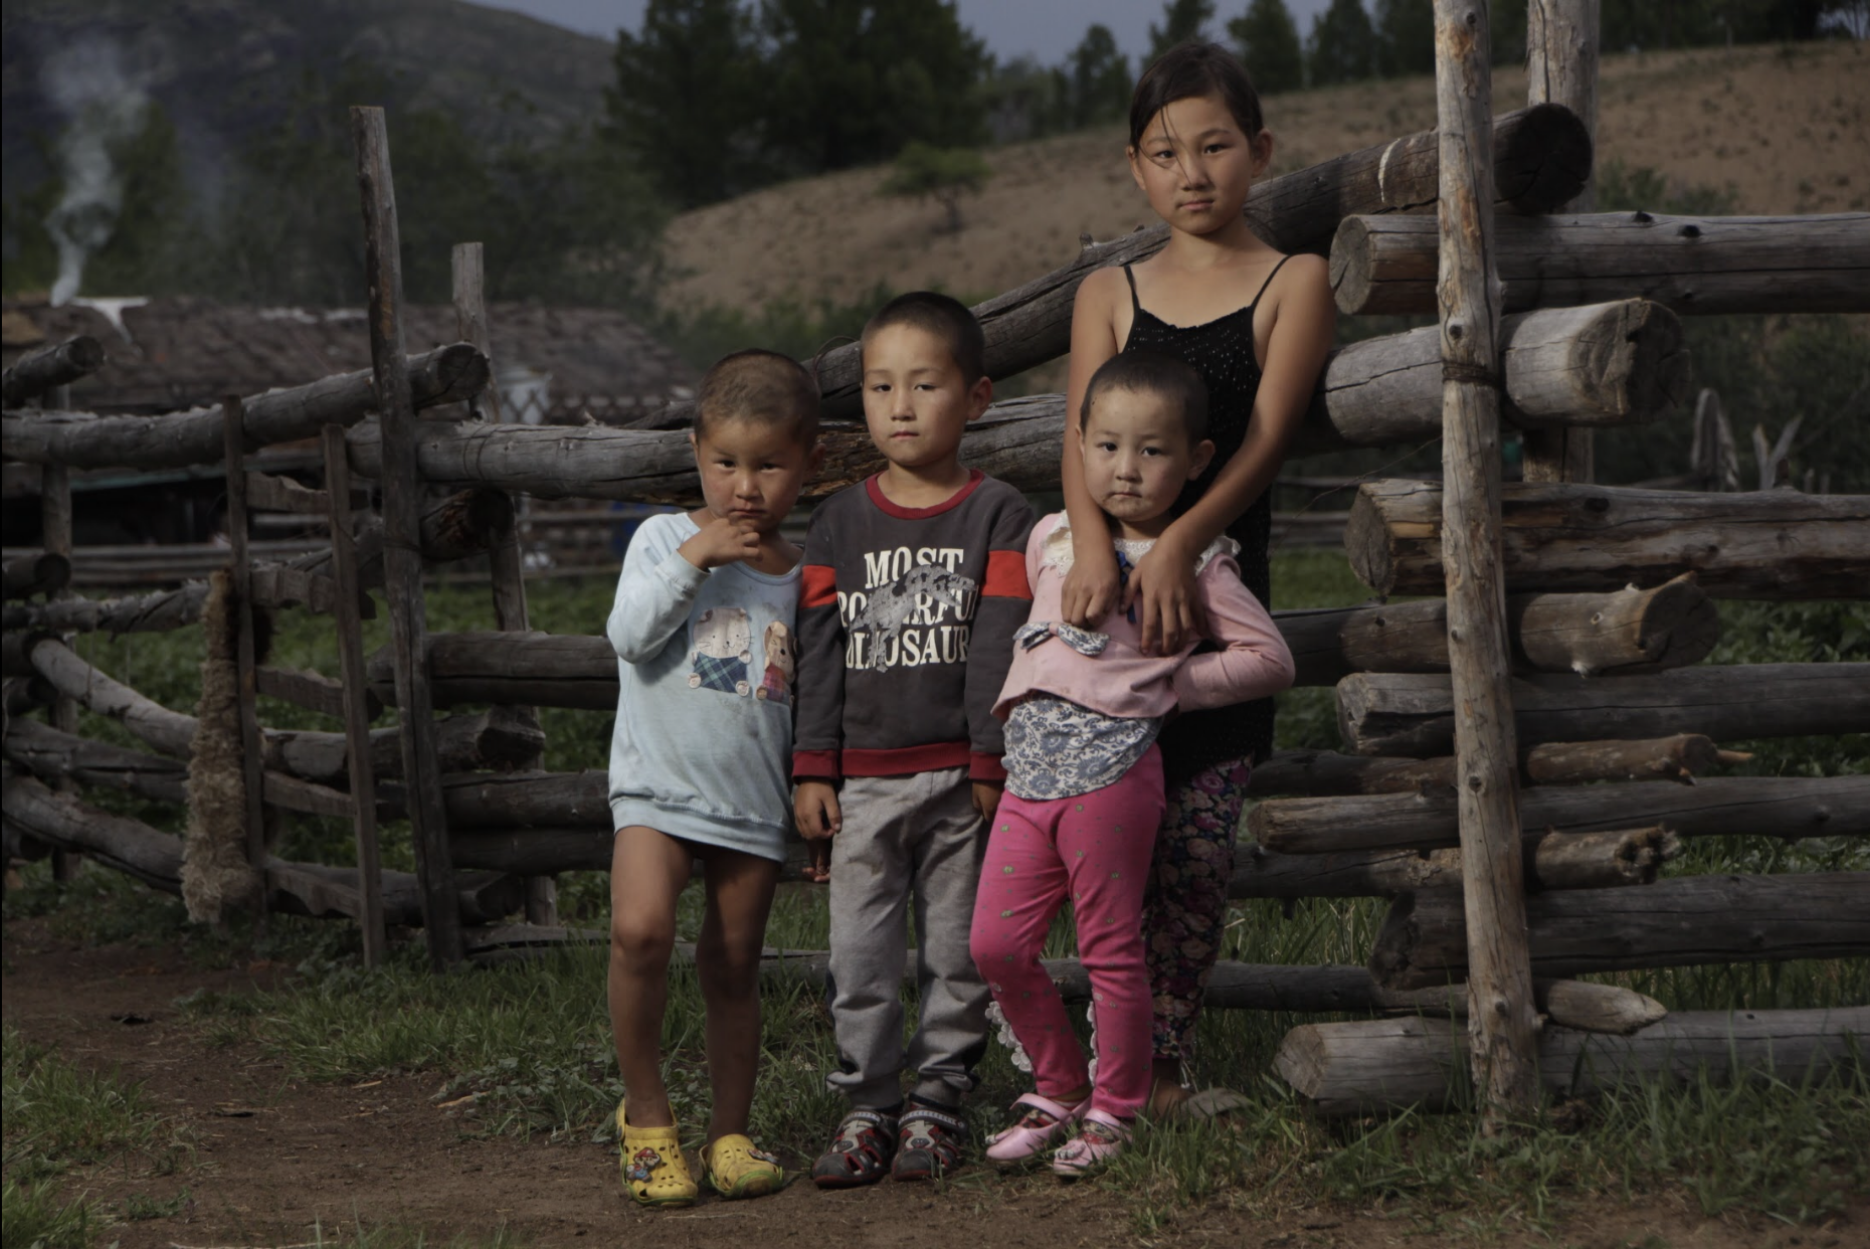 Bulgan province, Mongolia kids portrait photo by Amirdash